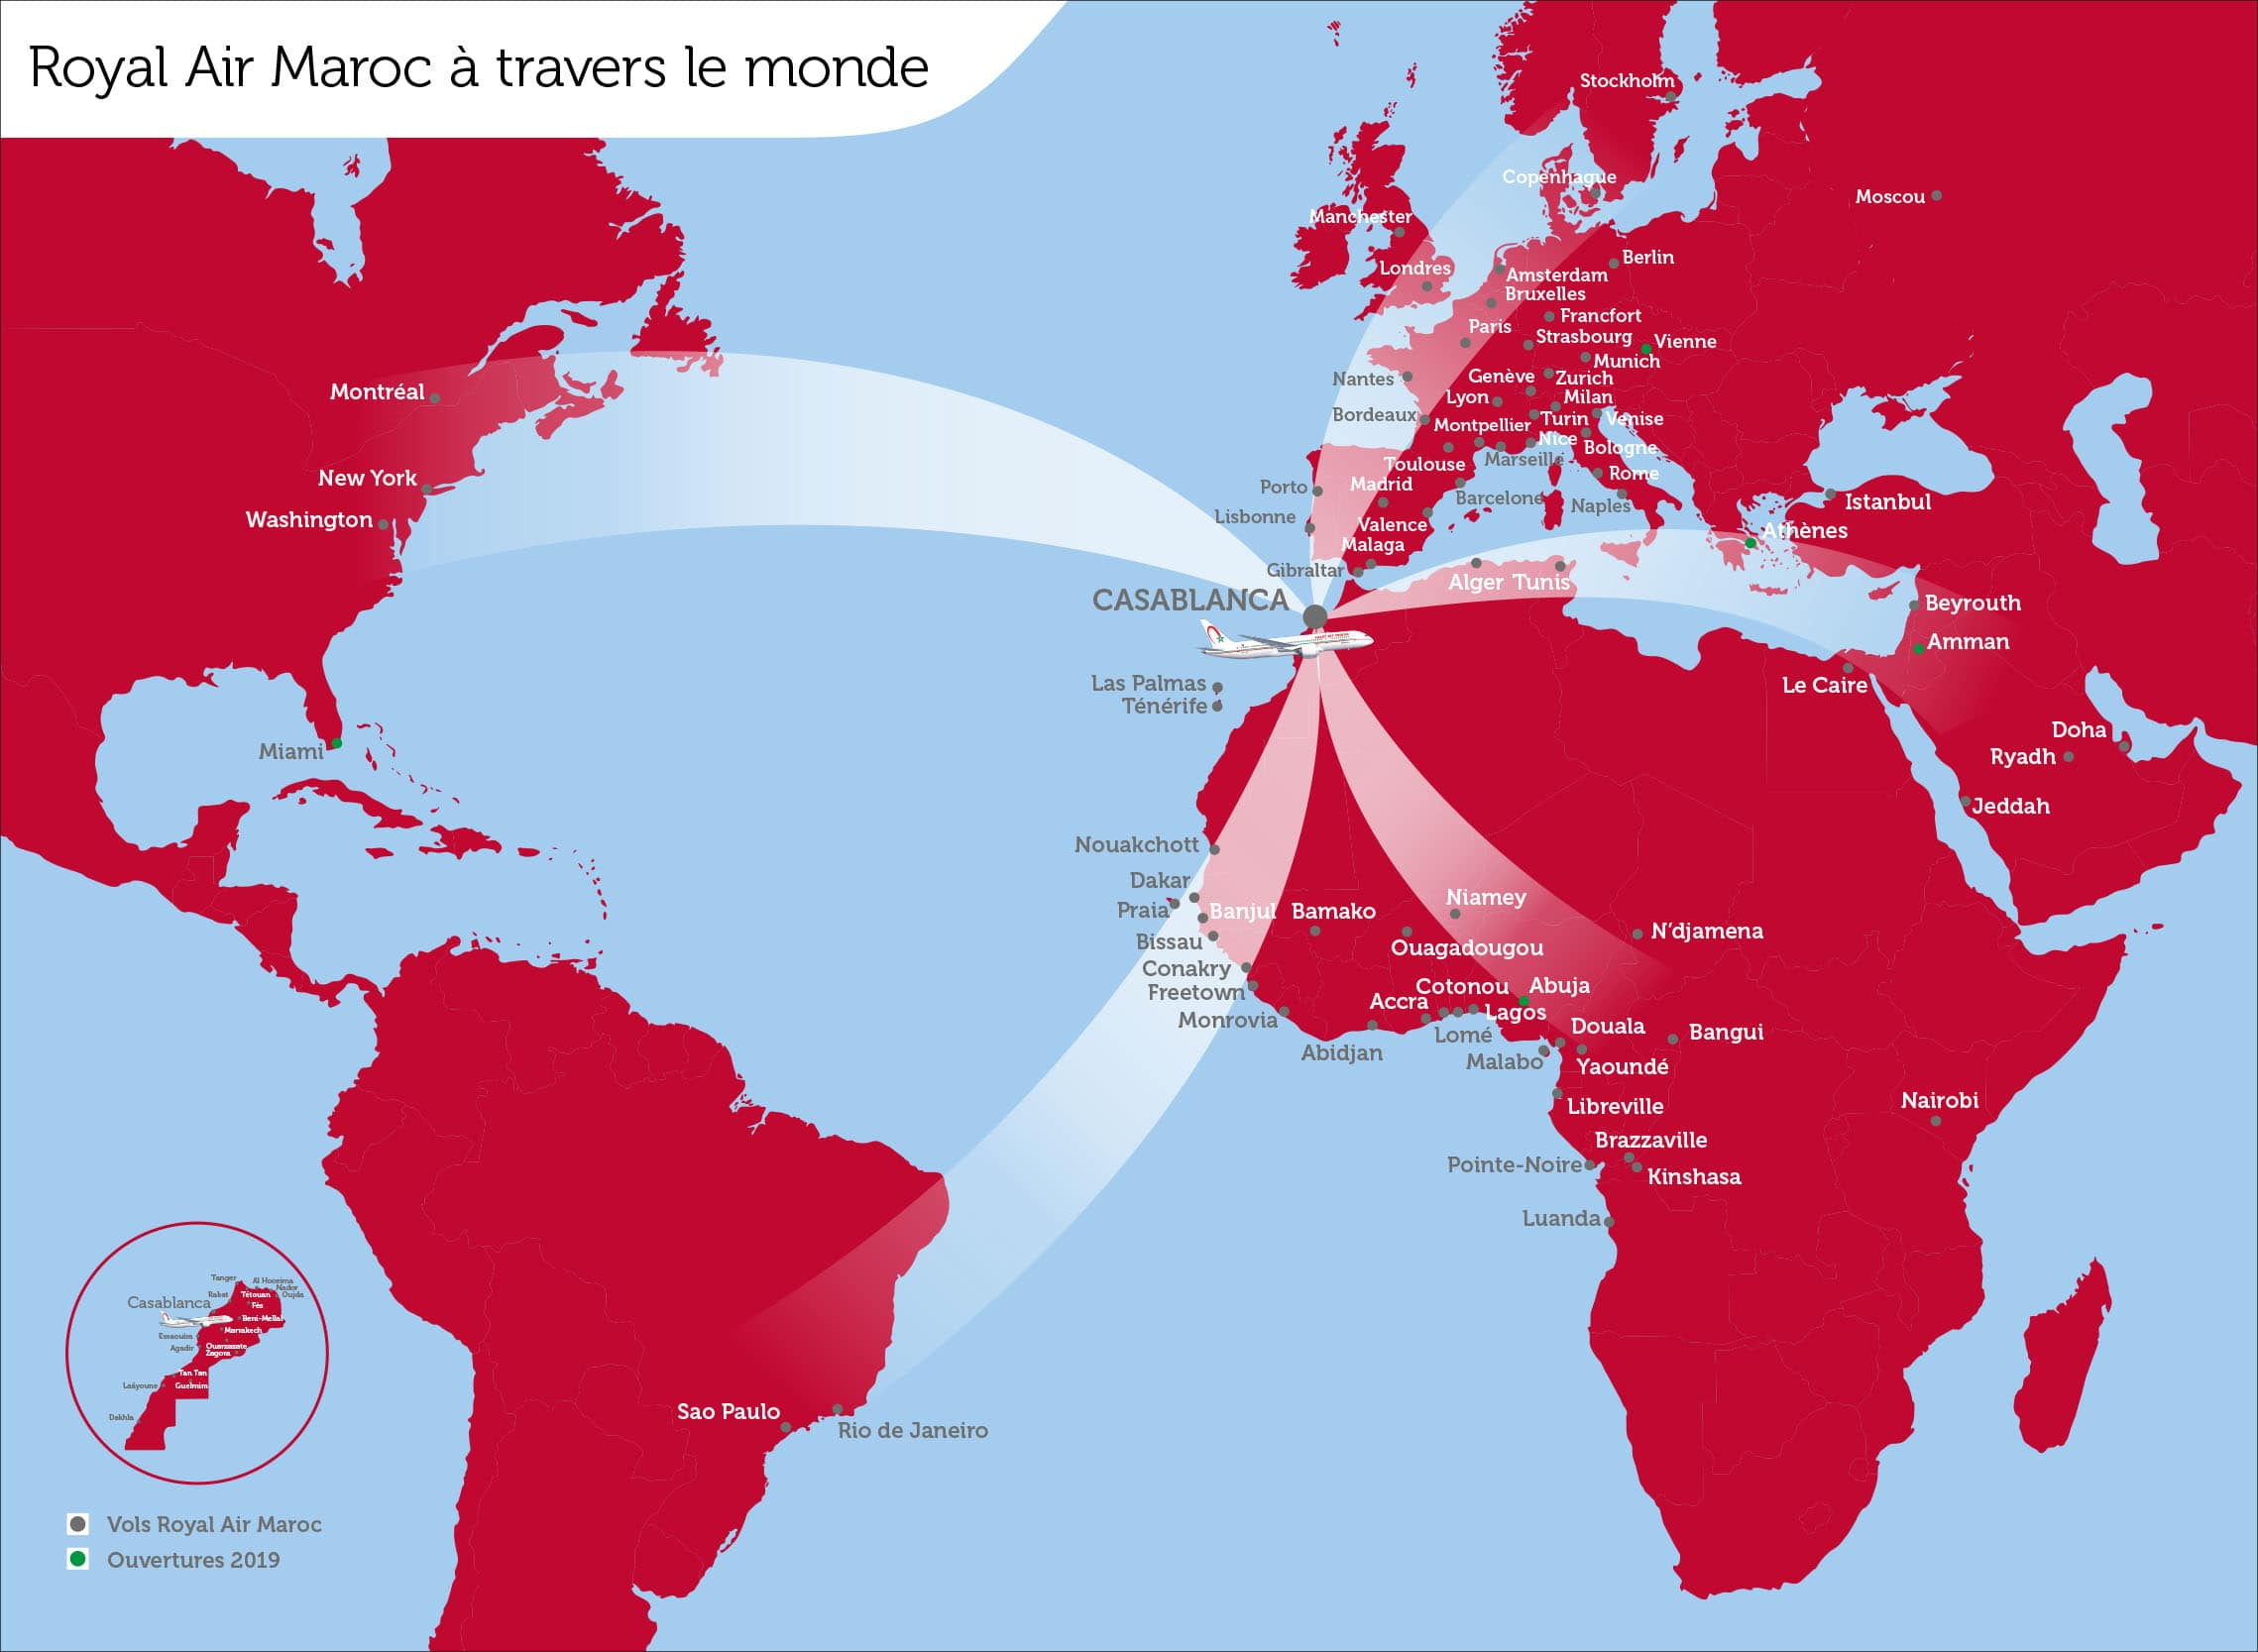 RAM Network Map. RAM has flights from Casablanca to the following destinations: Montreal, New York, Washington, Miami, Sao Paulo, Rio de Janeiro, Europe and Africa